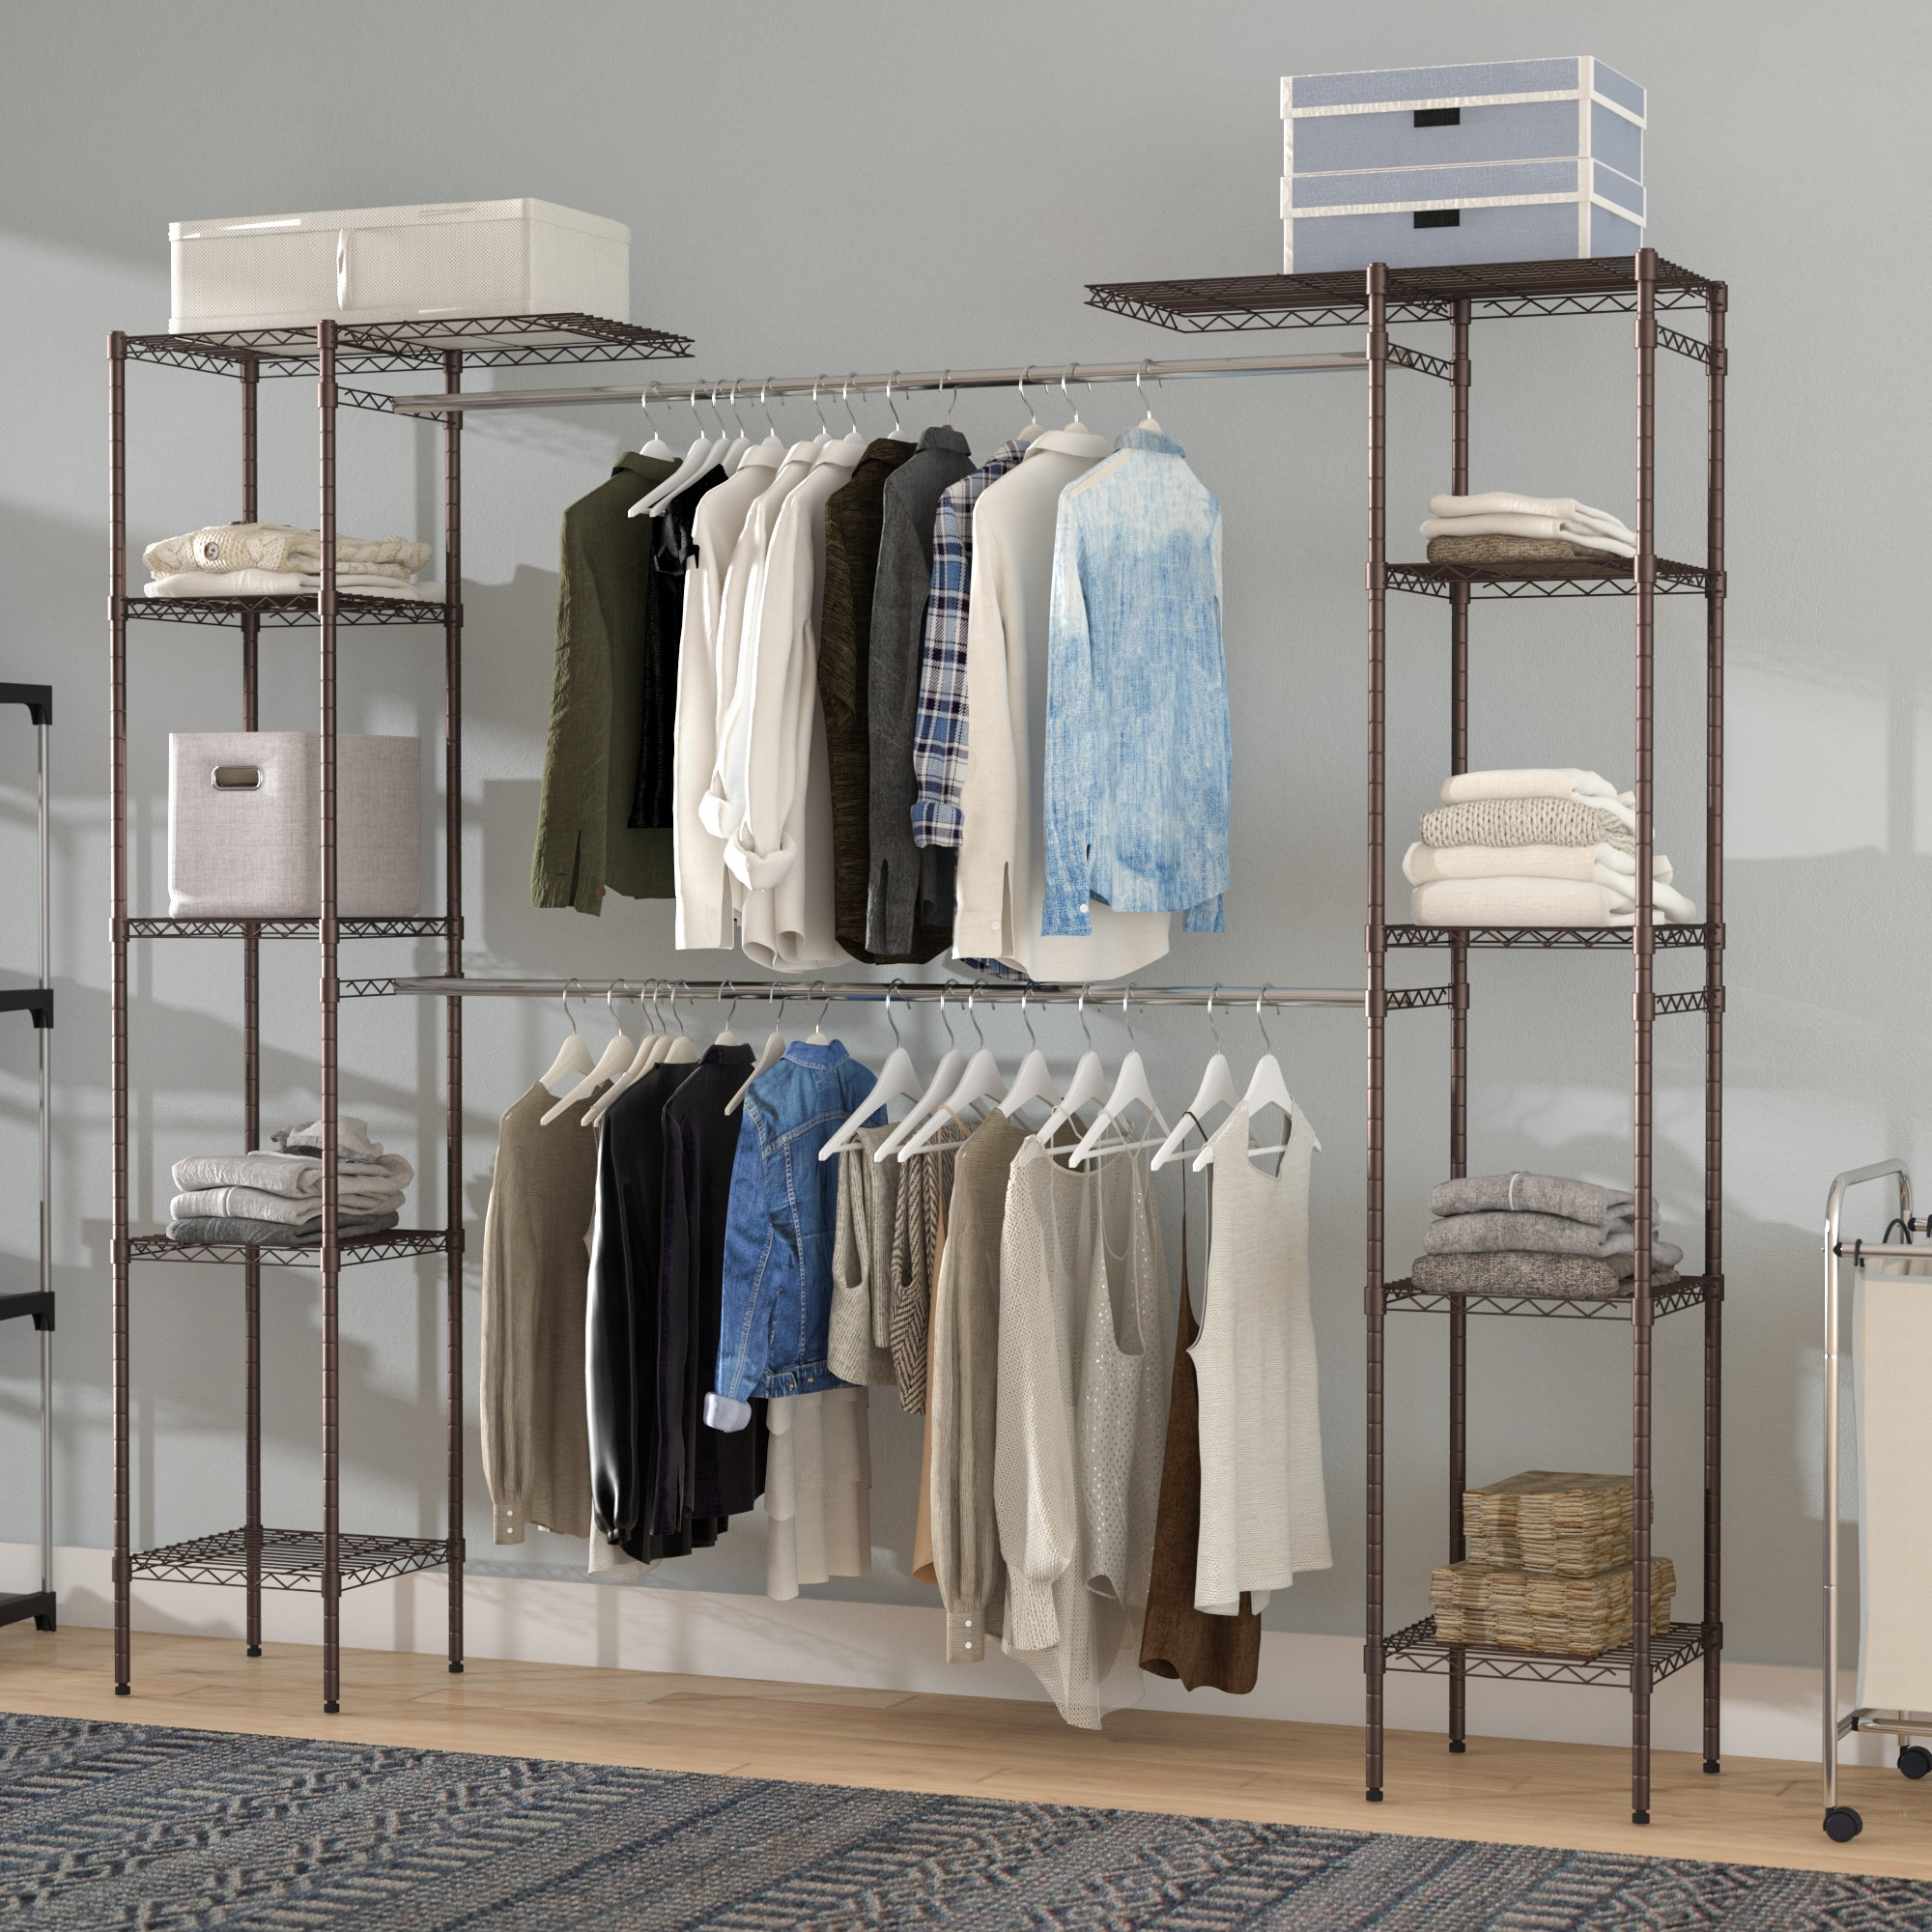 Double Hanging Wardrobe 15 Best Collection Of Wardrobe Double Hanging Rail